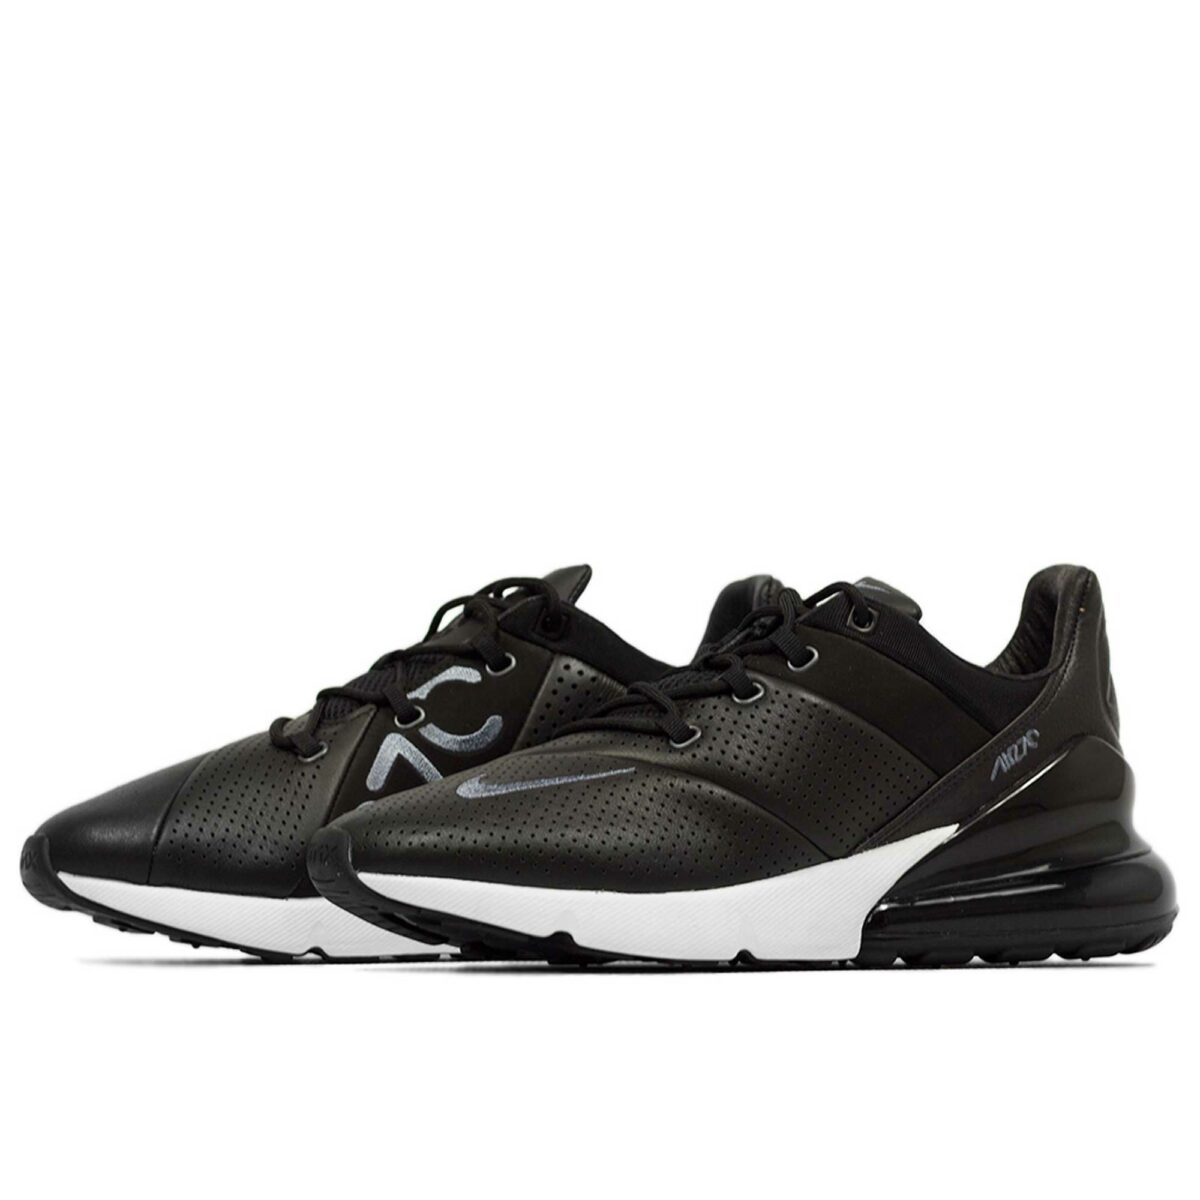 nike air max 270 black white ao8283_001 купить